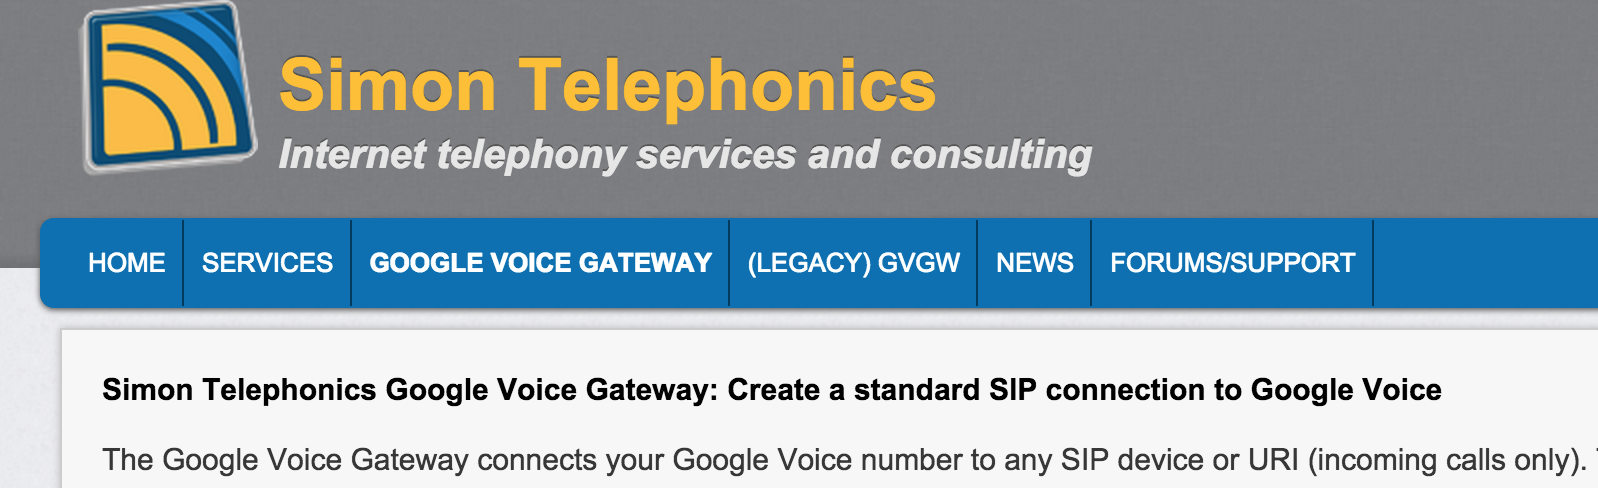 The Gotcha-Free PBX: Simon Telephonics New SIP Gateway for Google Voice